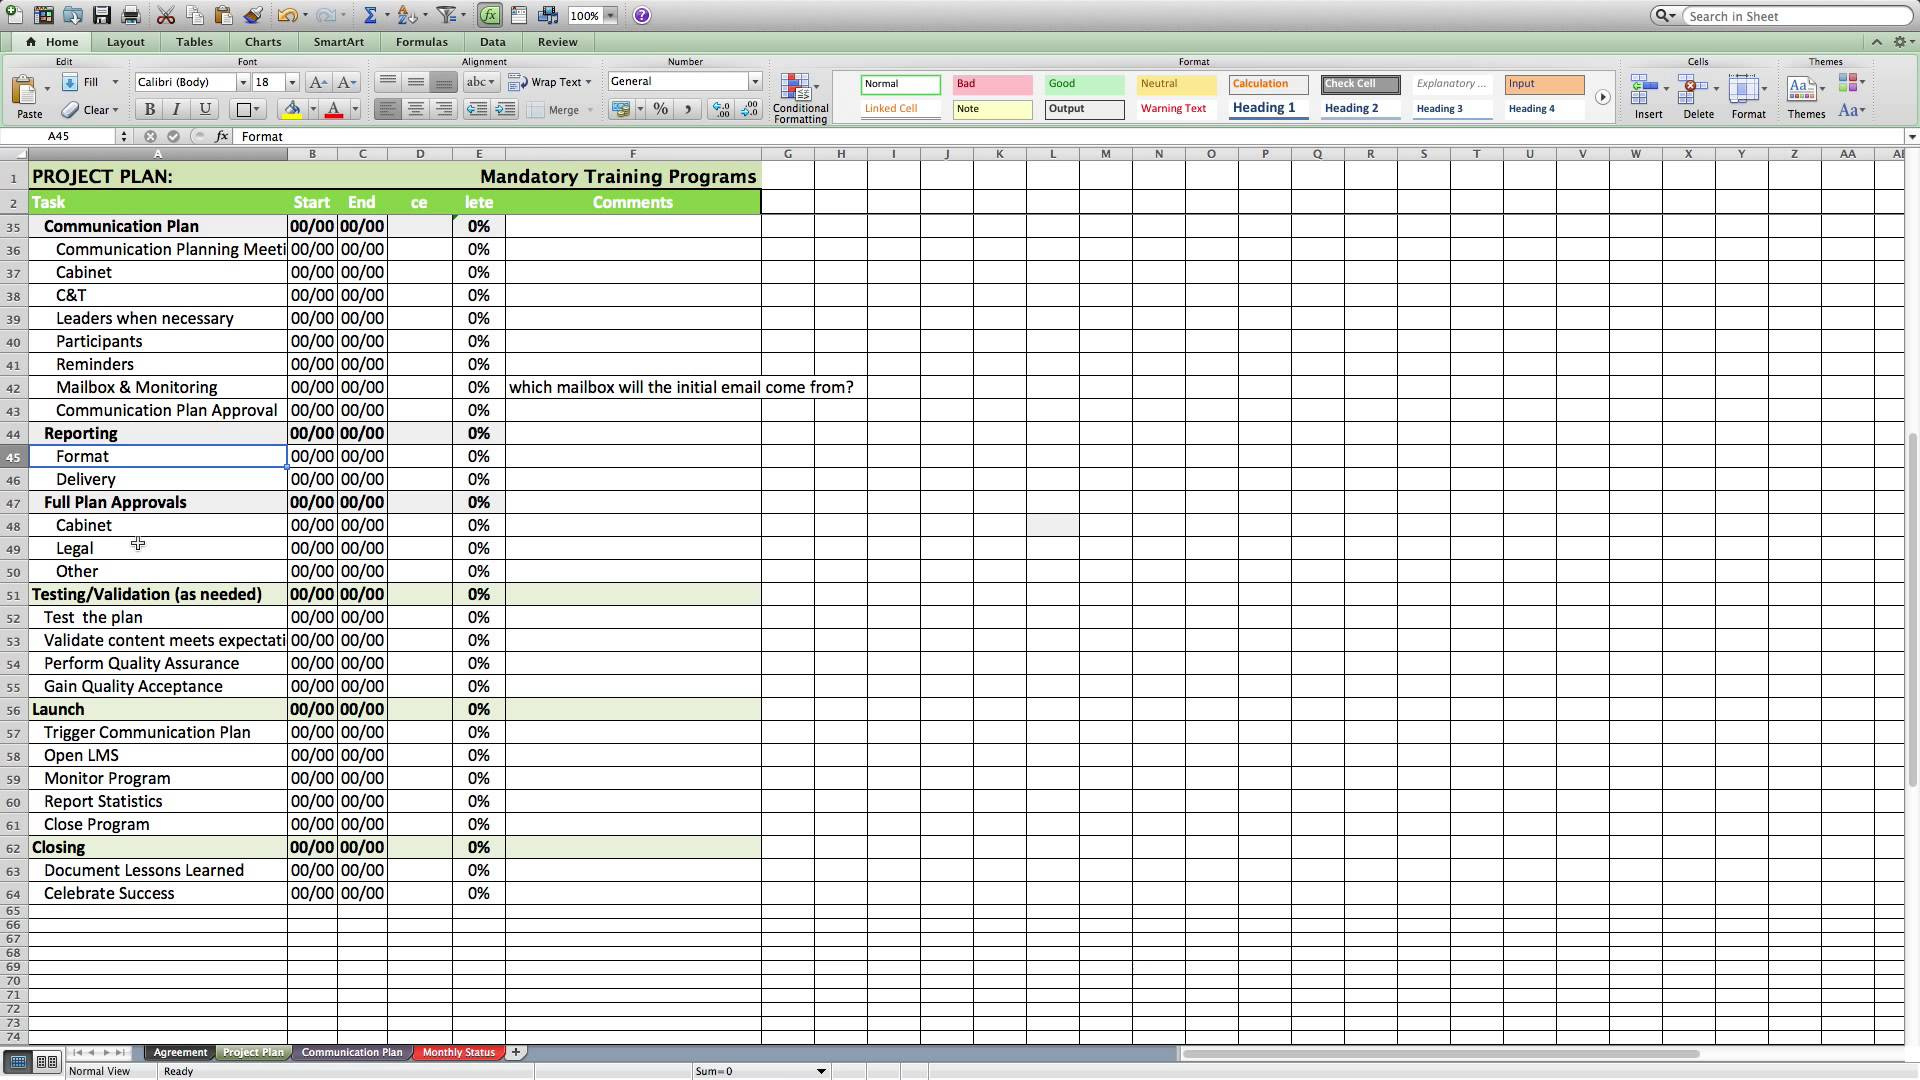 Spreadsheet Workbook within Project Planning Worksheet Workbook Template Excel Fresh Sample